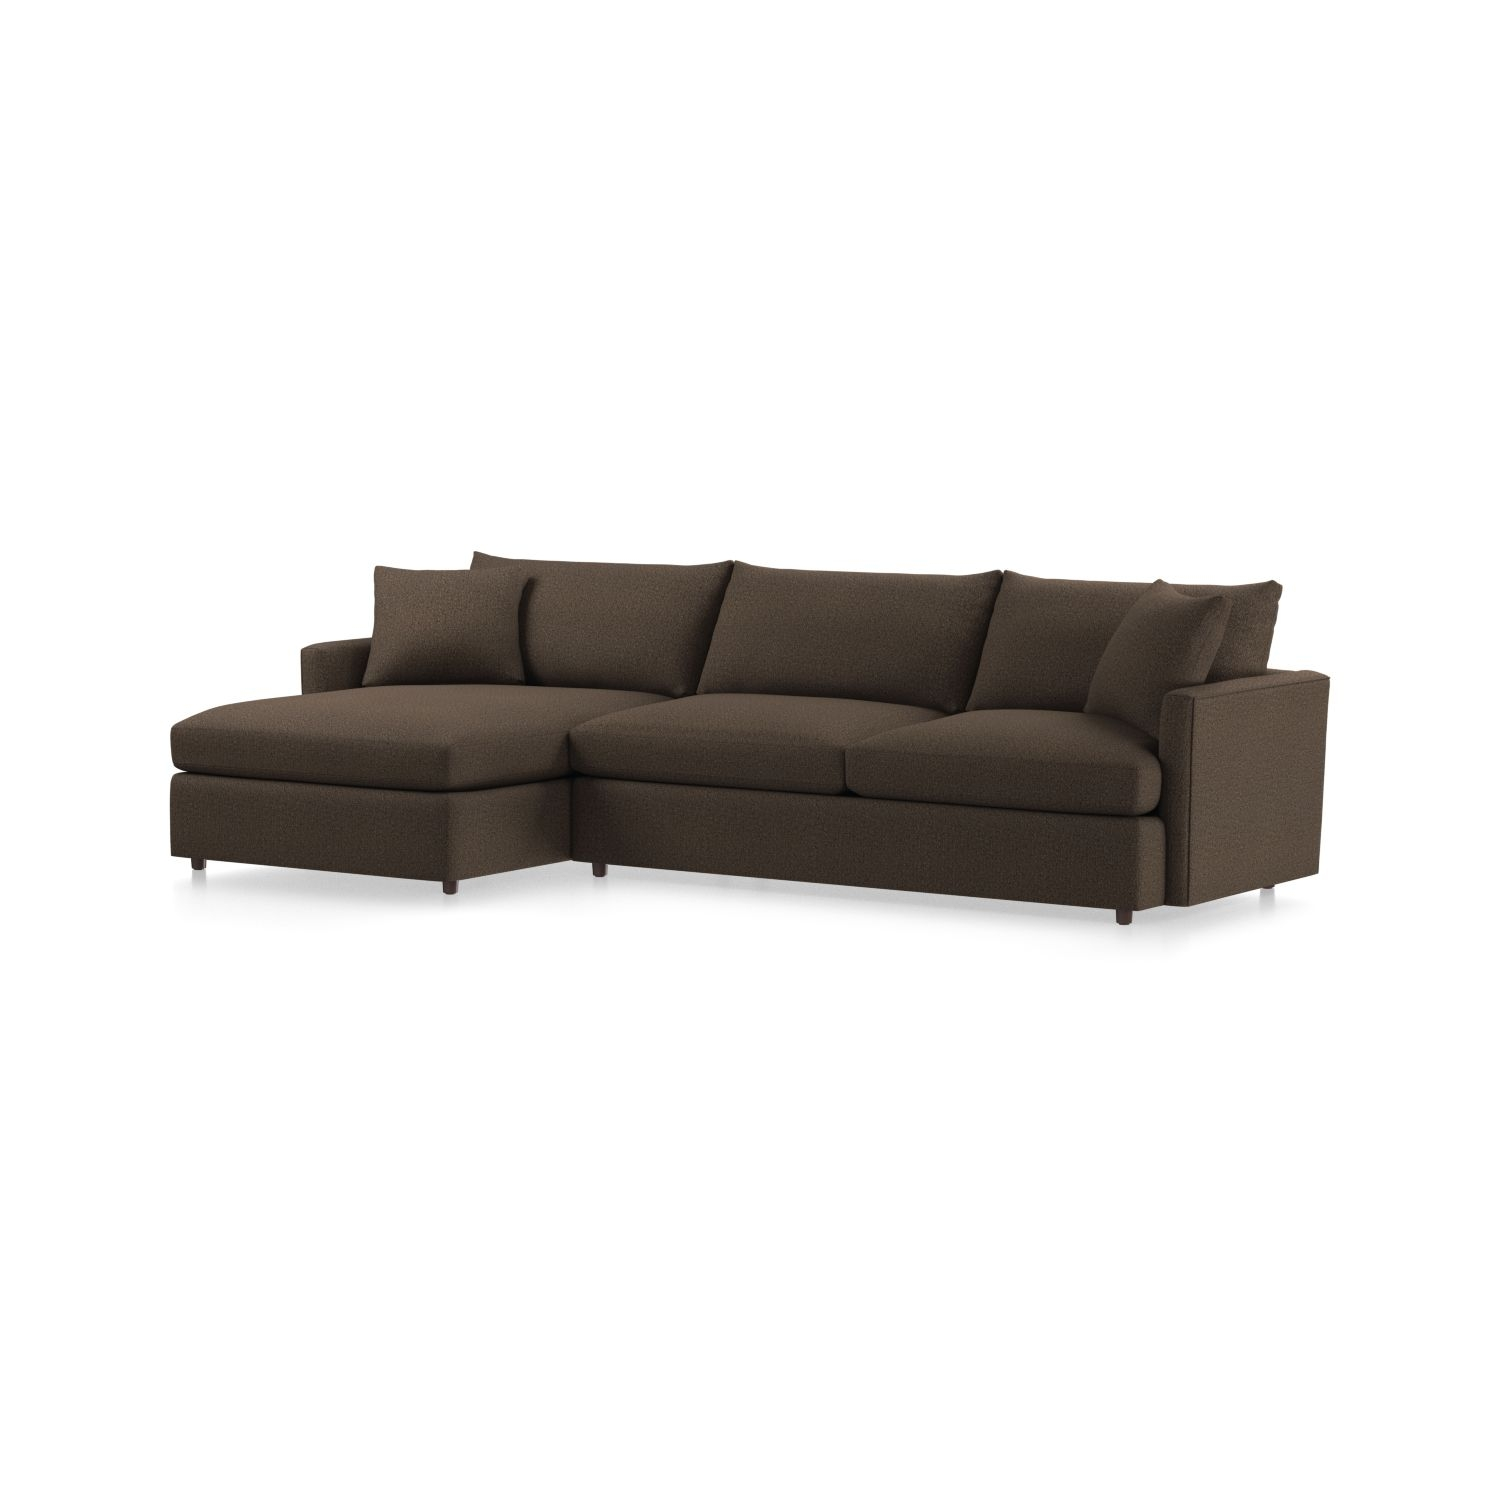 Lounge Ii Petite Sectional Sofa + Reviews | Crate And Barrel Intended For Elm Grande Ii 2 Piece Sectionals (View 10 of 25)